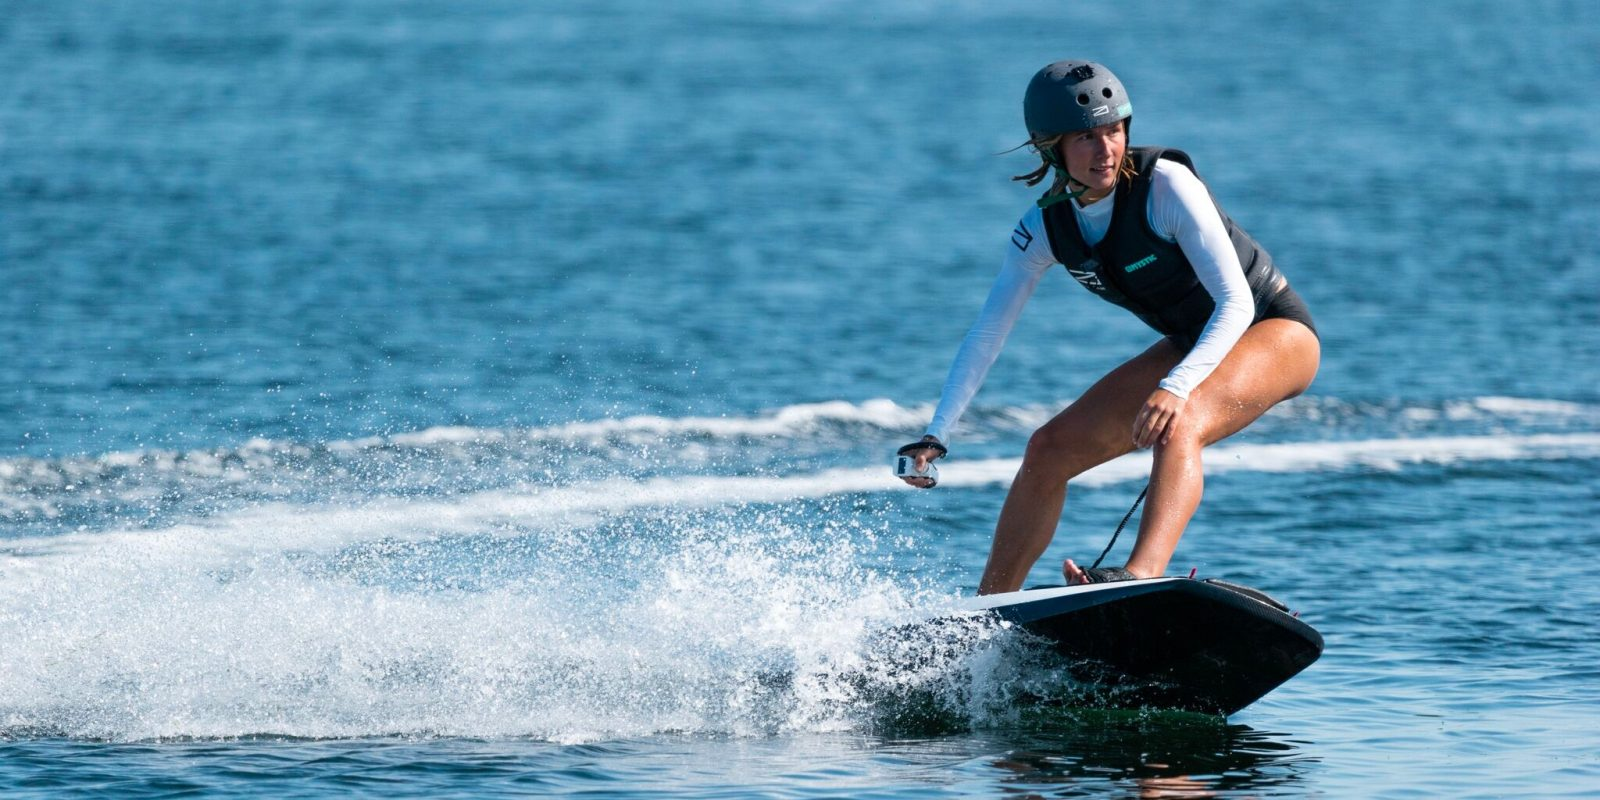 Water Hoverboard For Sale >> New Premium Swedish Electric Surfboard Is Making Waves In Extreme